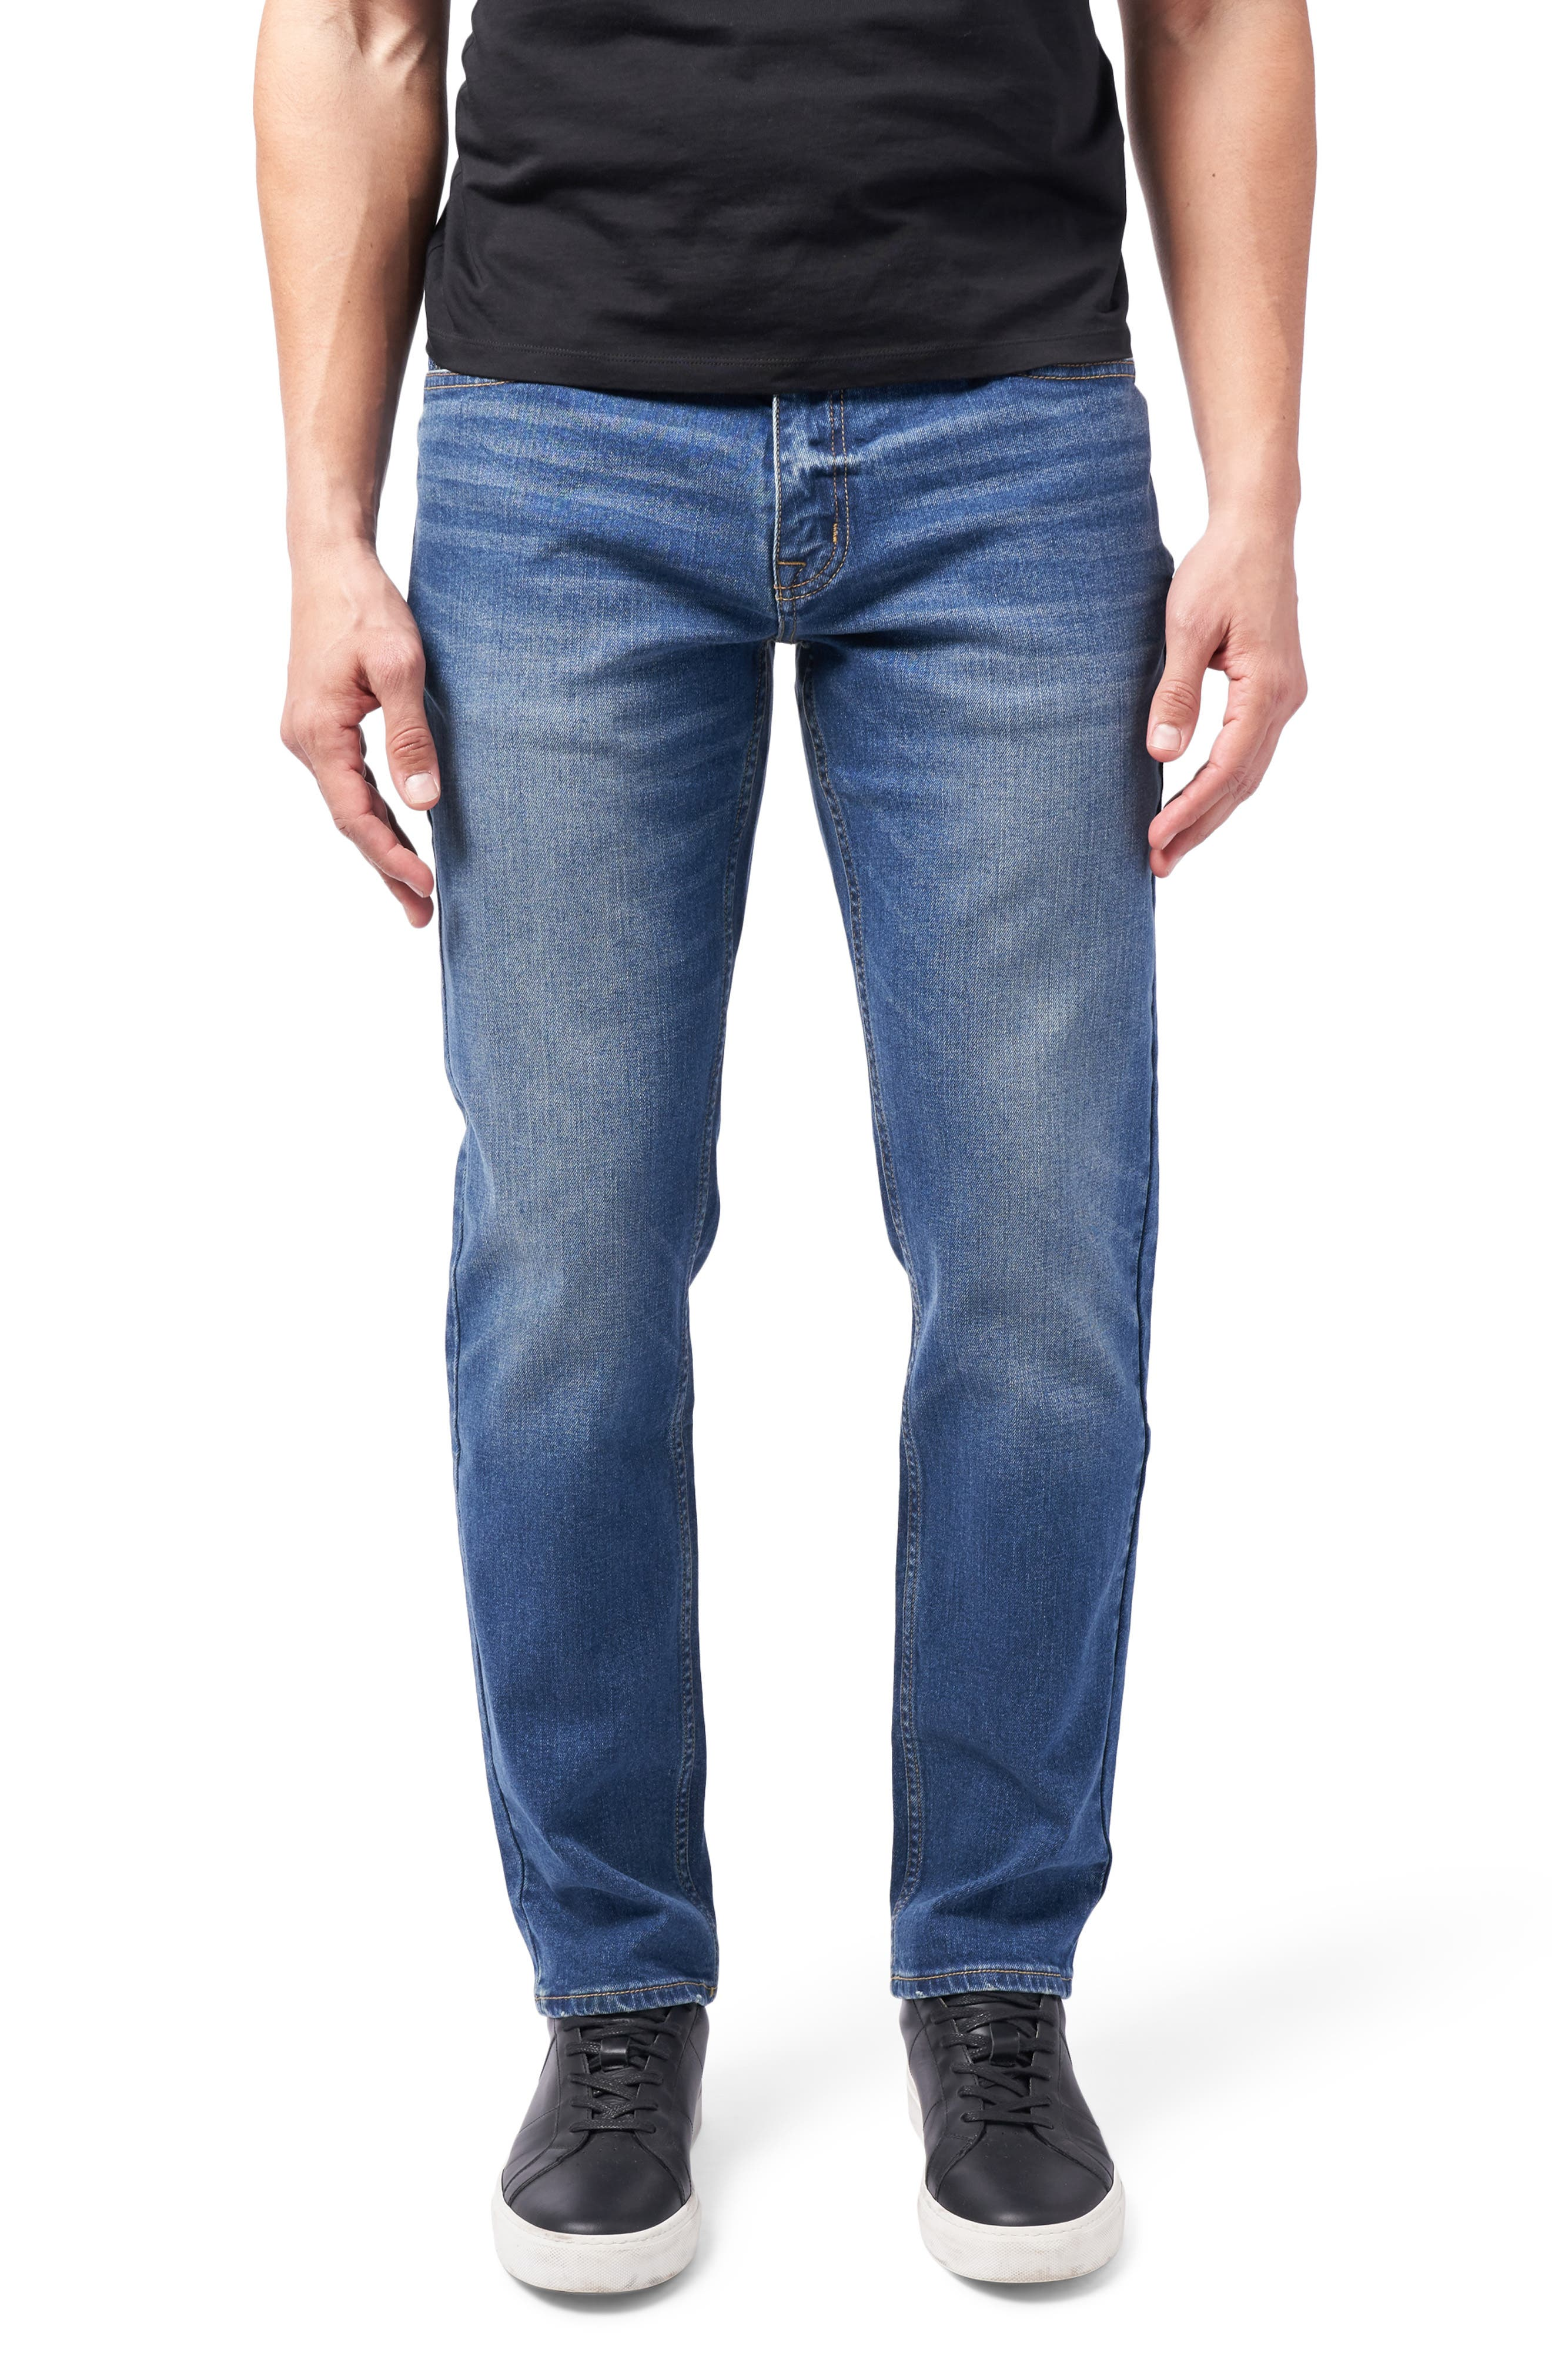 Performance Stretch Athletic Fit Jeans